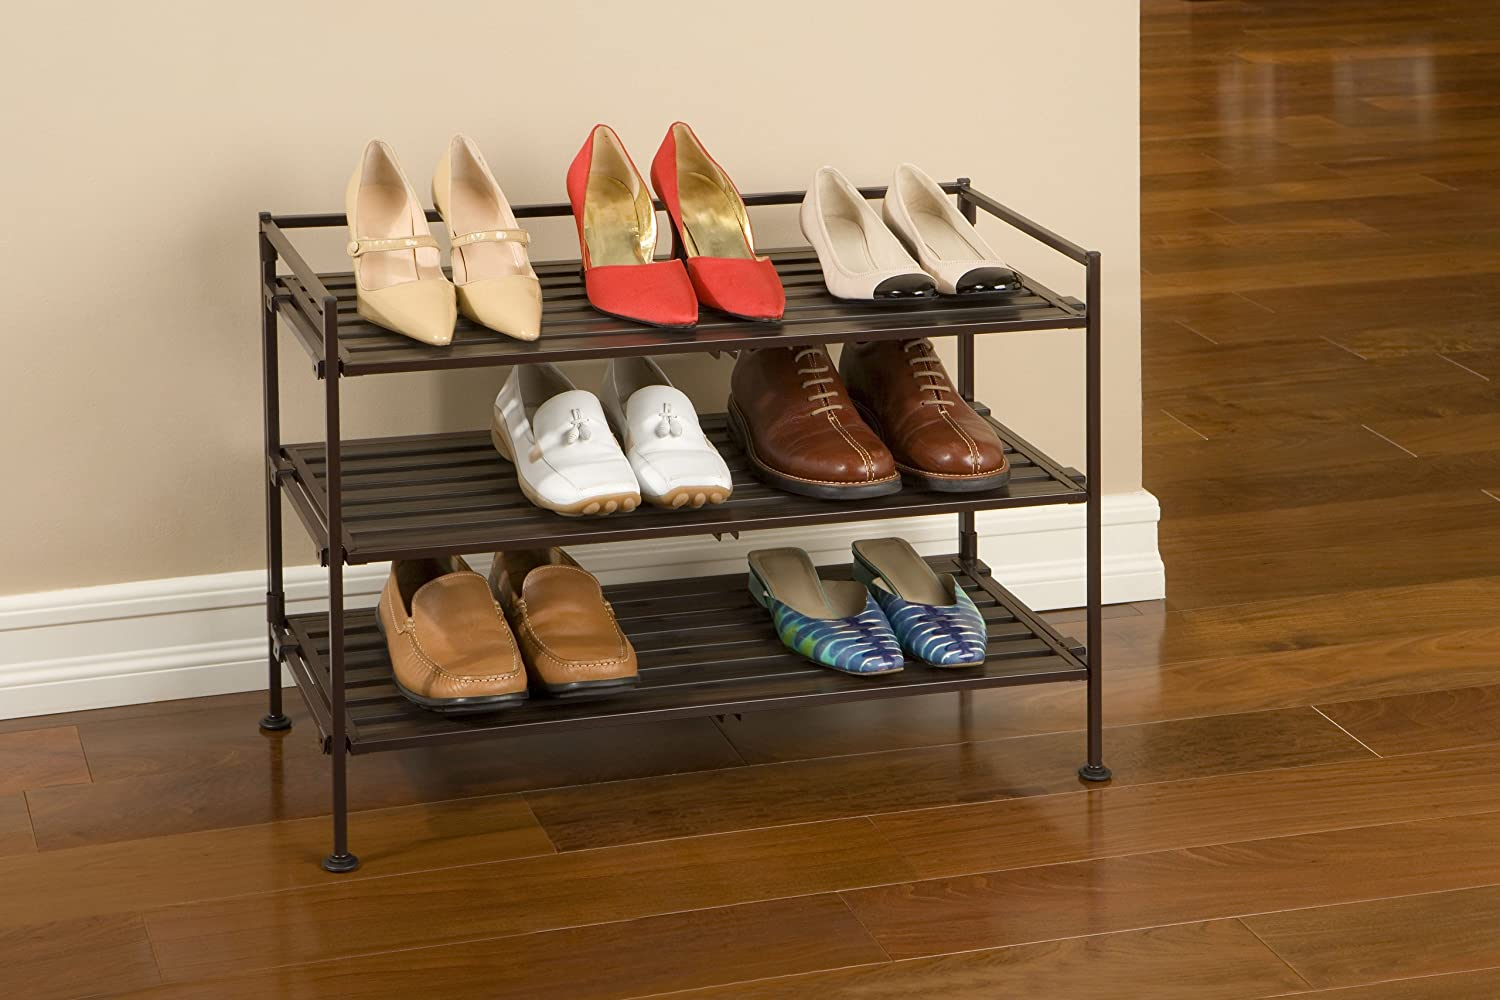 Hi there, for this post I'm collaborating with 3M DIY.. A few years back I made a shoe rack for the tiny corner by our back door which is the only place to put shoes when we enter the house. There isn't enough room to fit a regular rack and the space is tight enough that I wanted to avoid having anything hard that I (because I am clumsy) could bang my shin on as I am reaching for my coat.